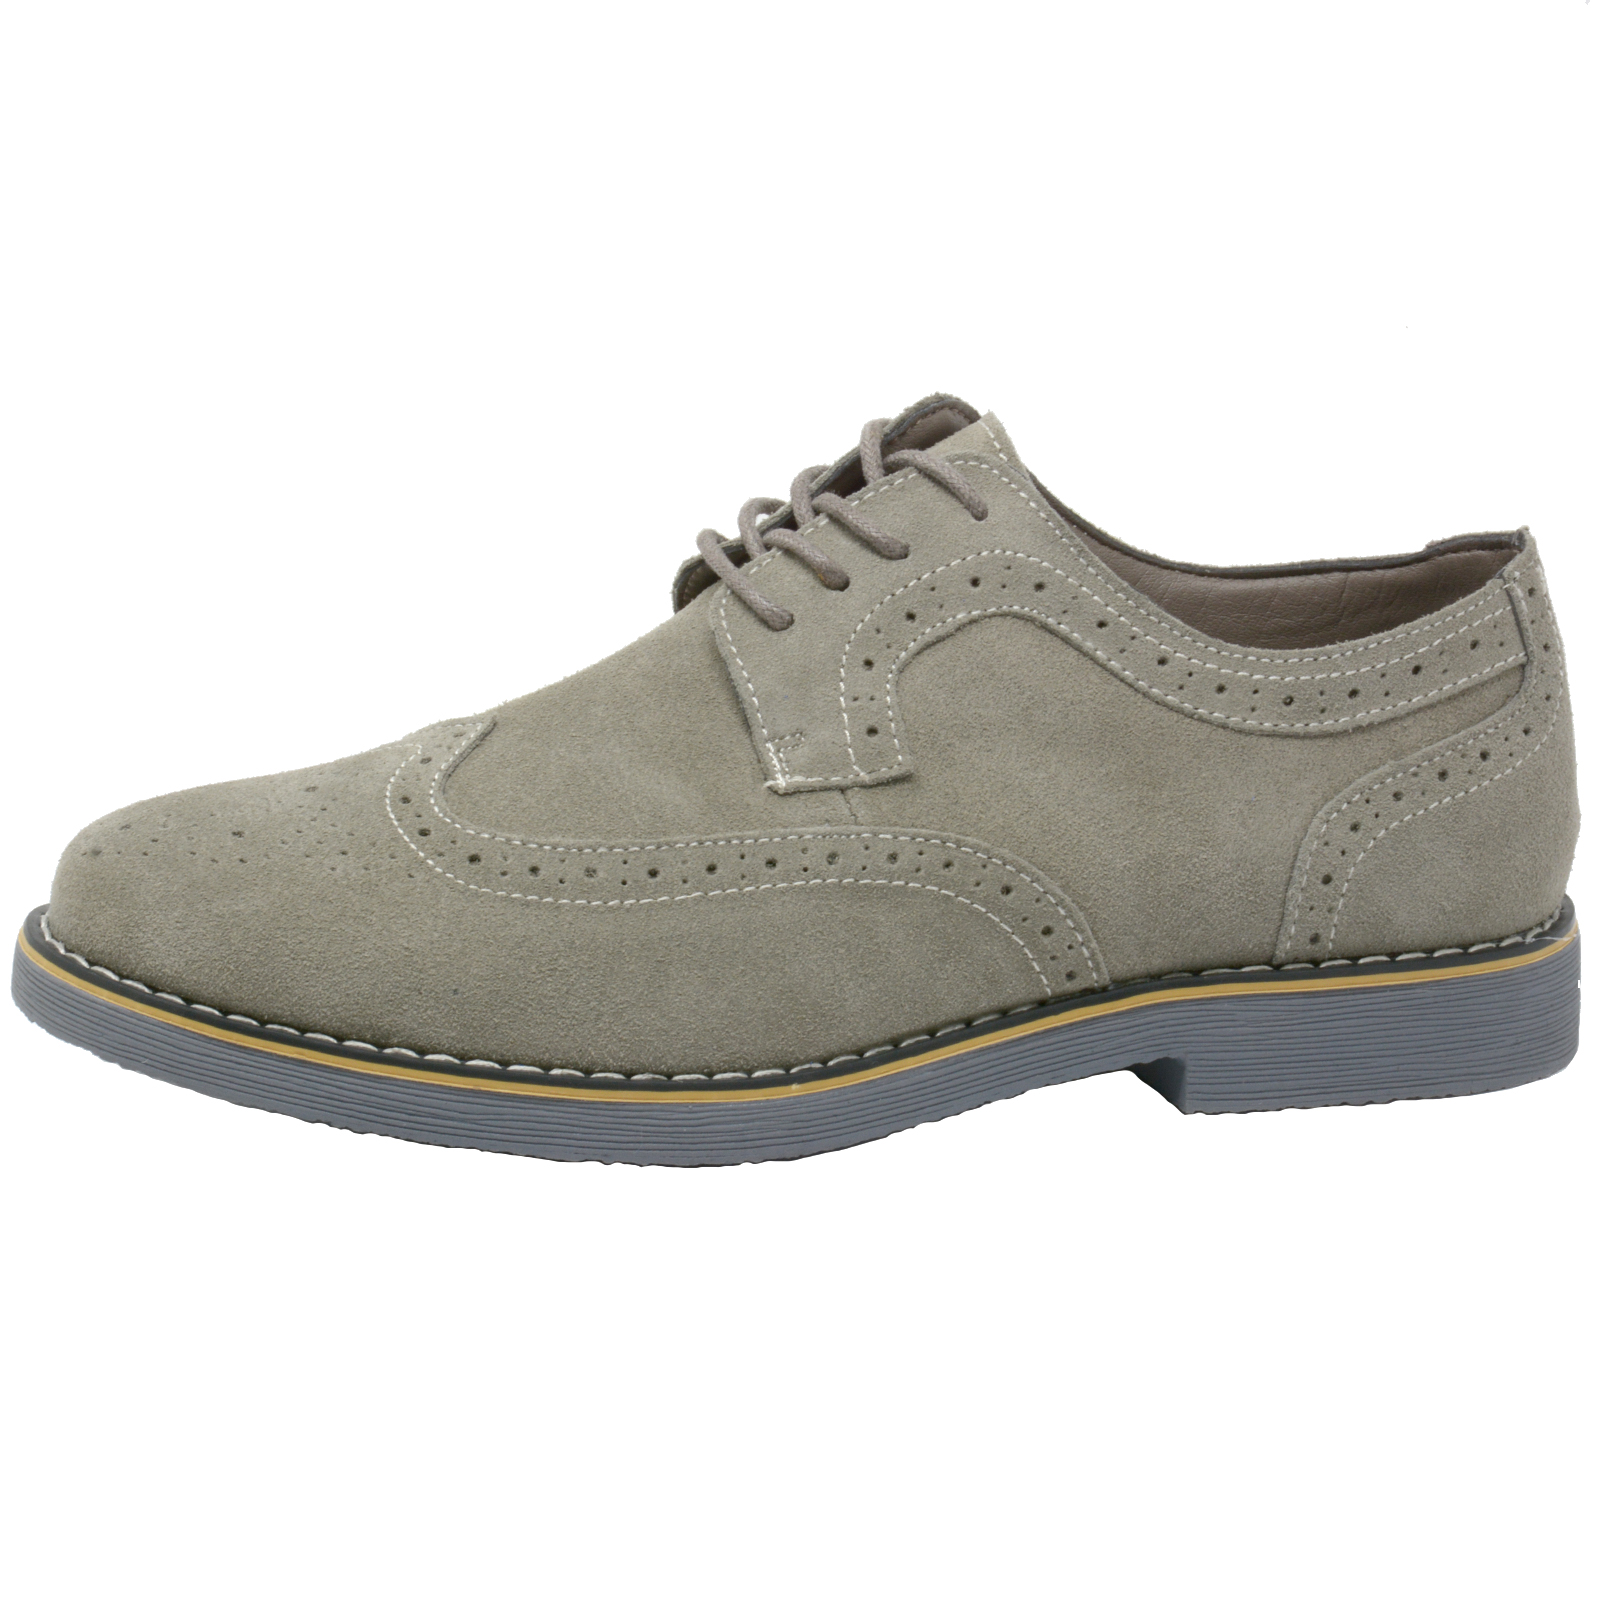 Alpine-Swiss-Beau-Mens-Dress-Shoes-Genuine-Suede-Wing-Tip-Brogue-Lace-Up-Oxfords thumbnail 21